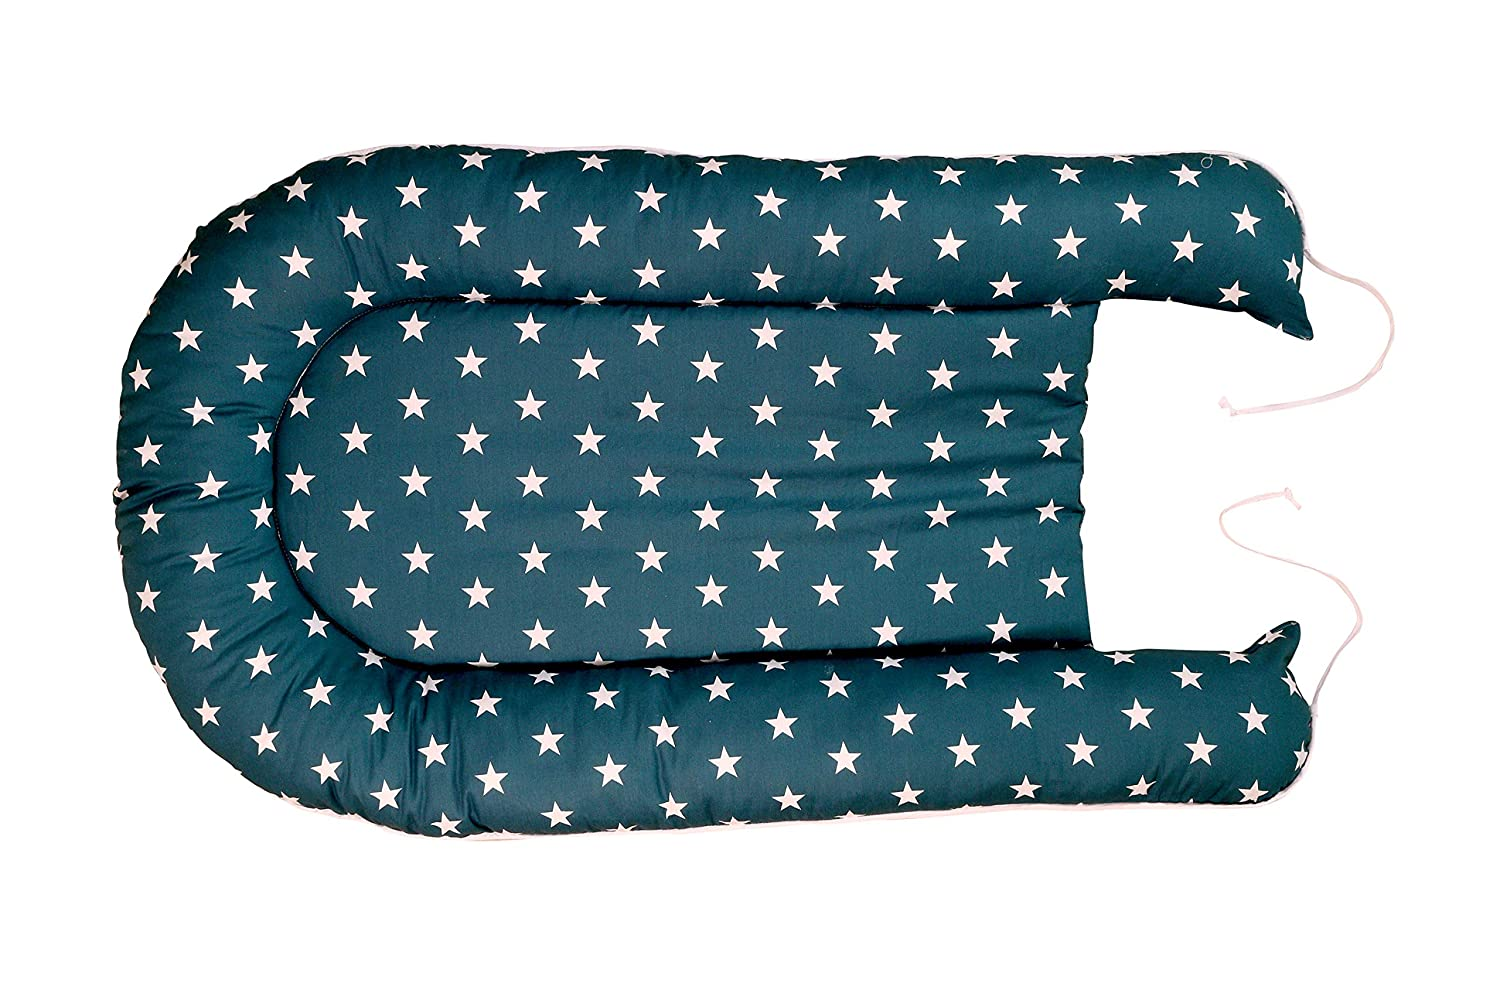 Blue Light Blue Grey 55x95 cm Baby Cocoon, Cotton Sleeping nest, Suitable for a Travel Bed or a Snuggly Sleep pod ULLENBOOM//® Baby nest/